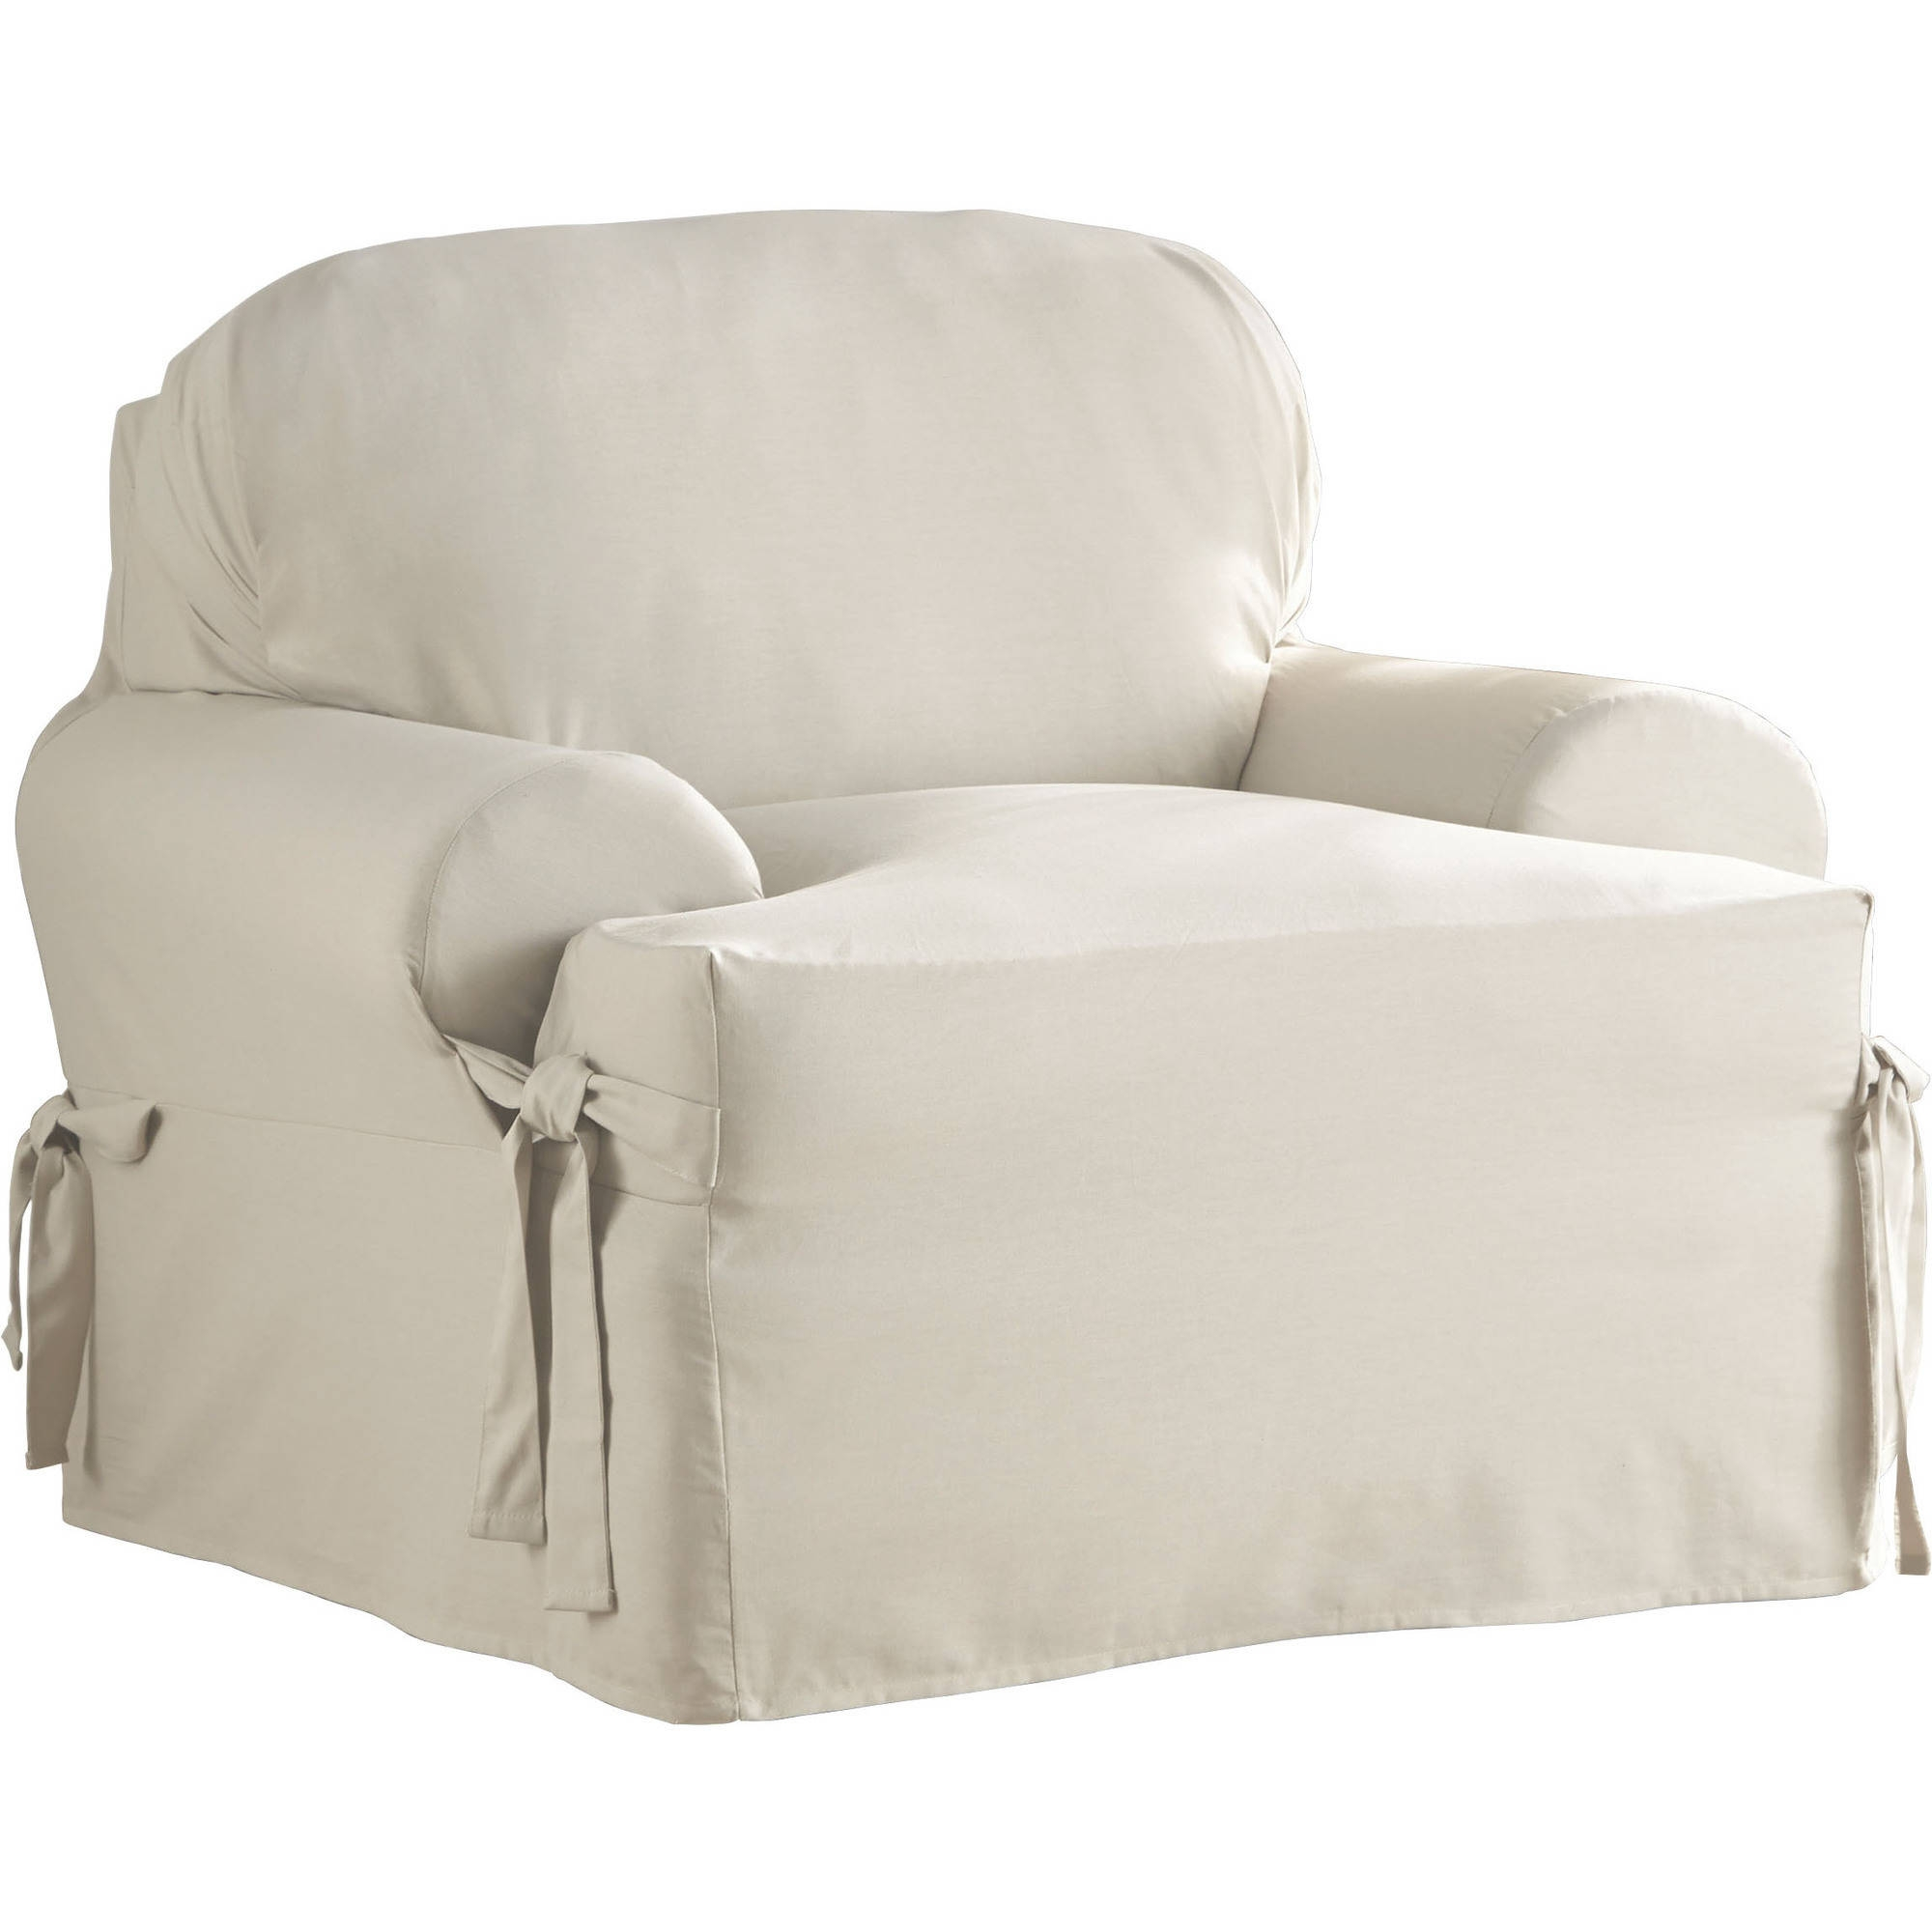 Slipcovers Walmart Within Sofa And Chair Slipcovers (Image 12 of 15)